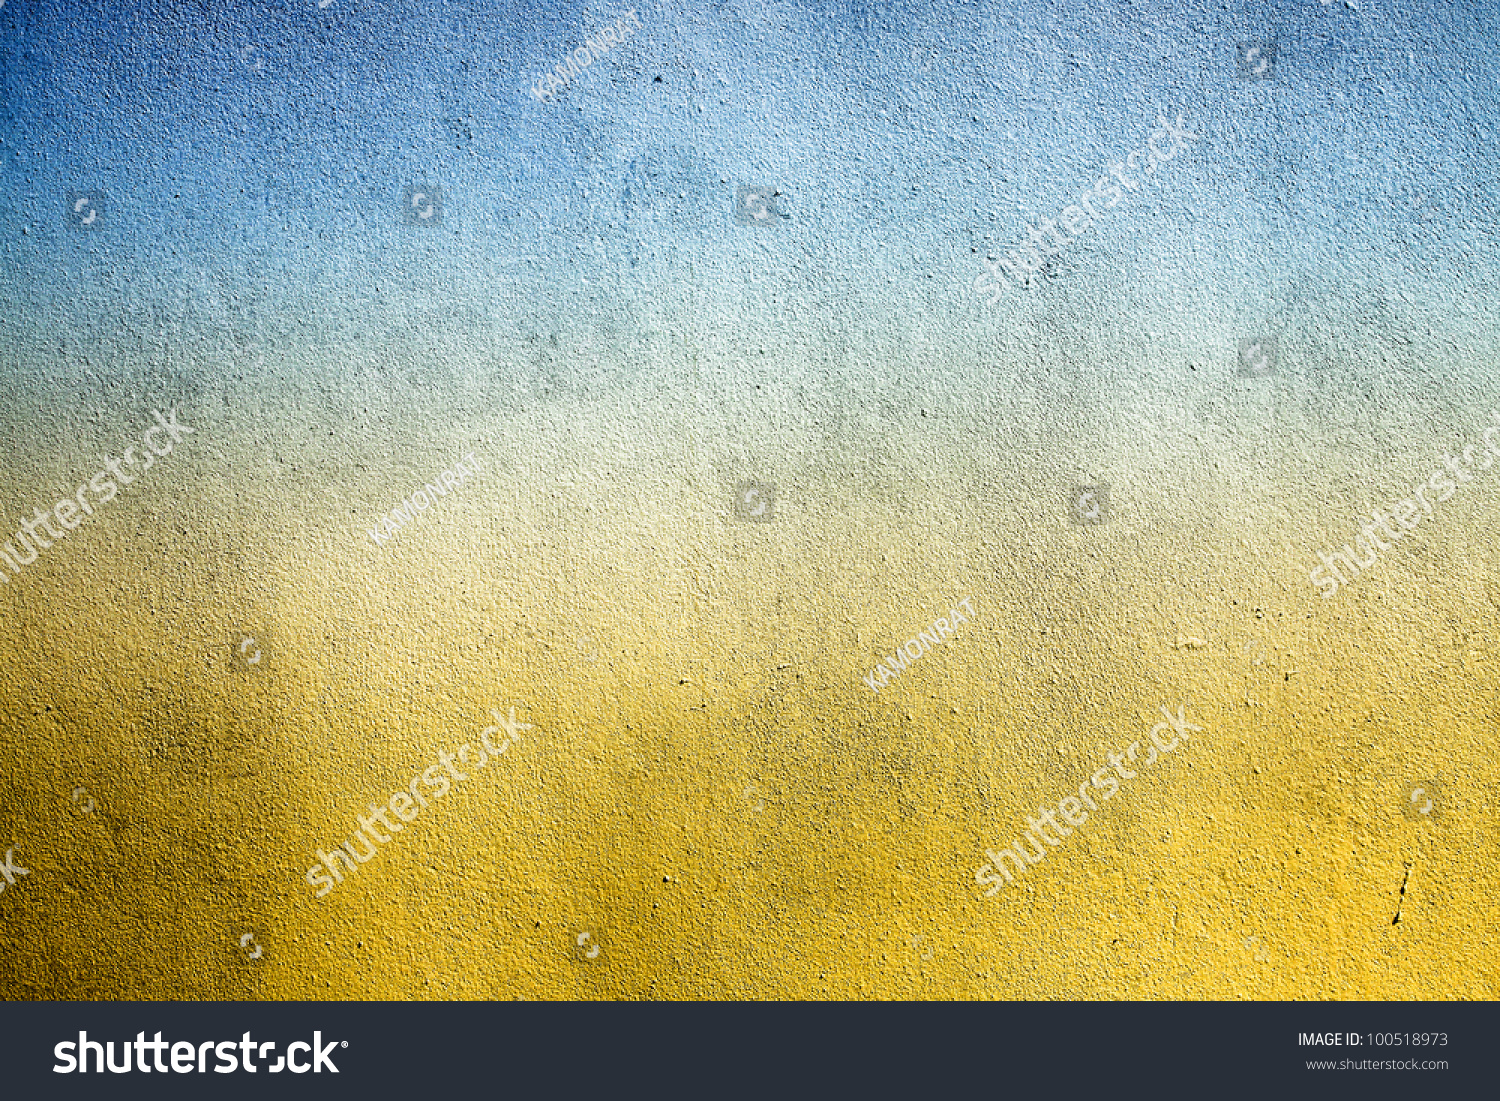 grunge cement wall color blue yellow can be used as background stock photo 100518973 shutterstock. Black Bedroom Furniture Sets. Home Design Ideas